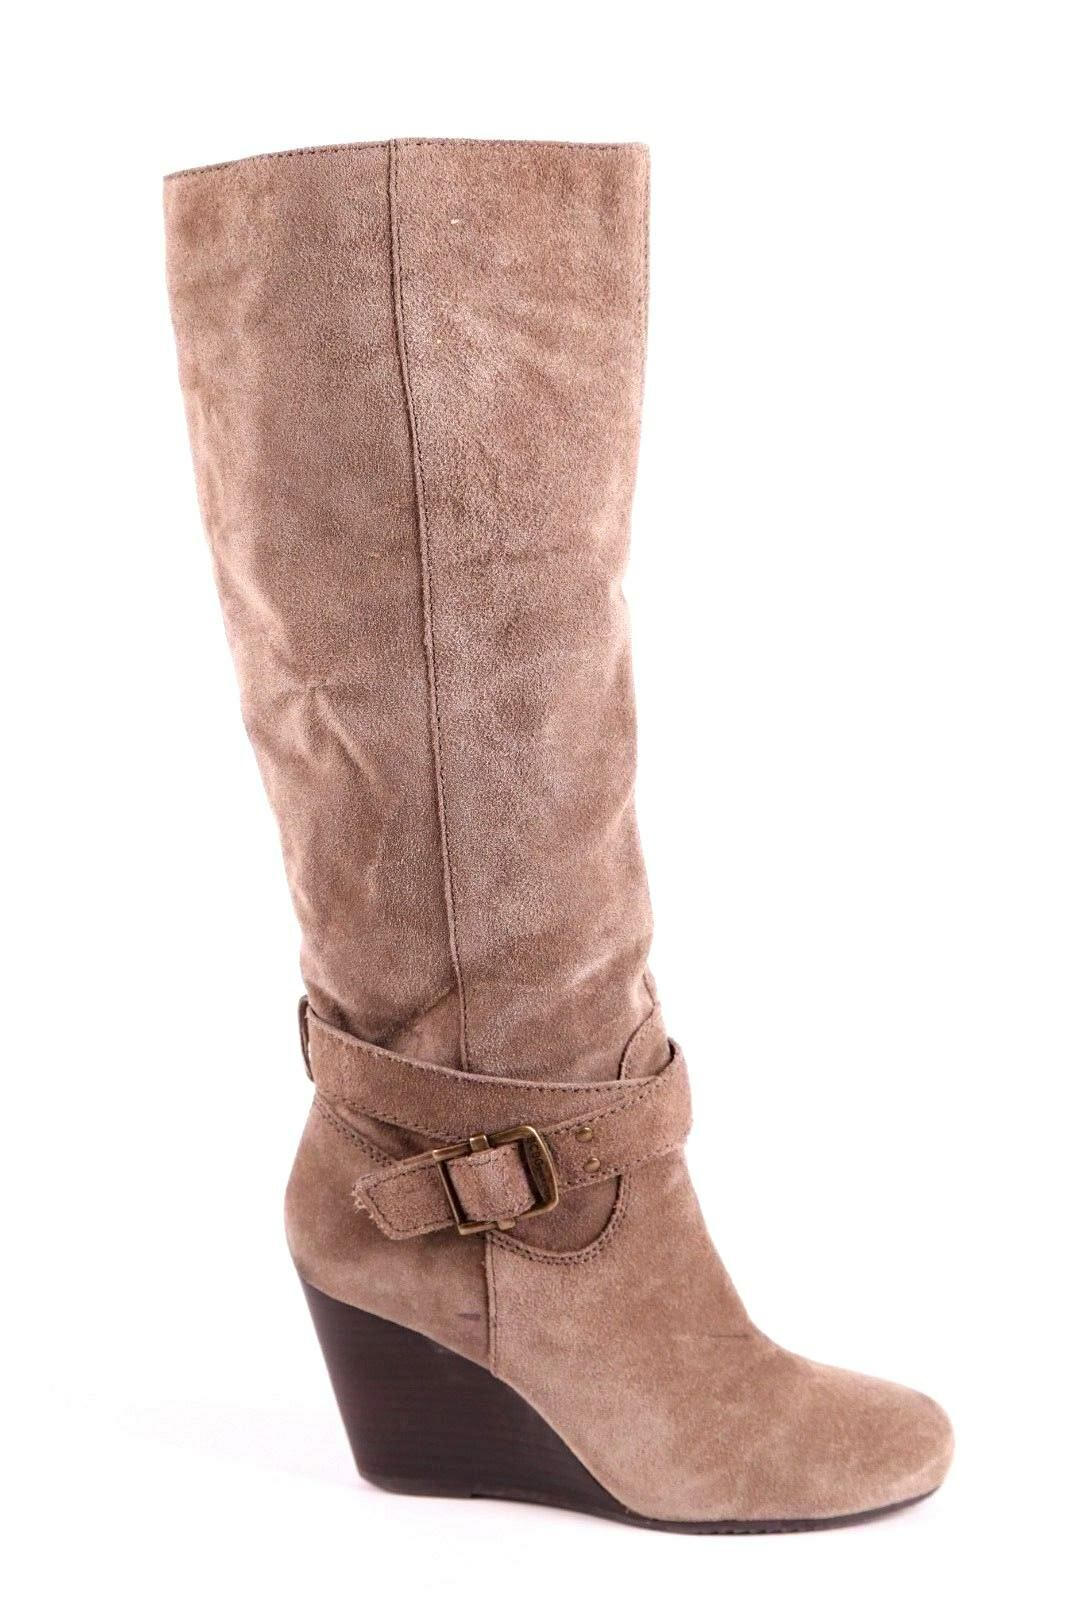 BCBGENERATION WEDGE BOOTS 8.5 SUEDE LEATHER BEIGE KNEE HIGH W/ BUCKLE